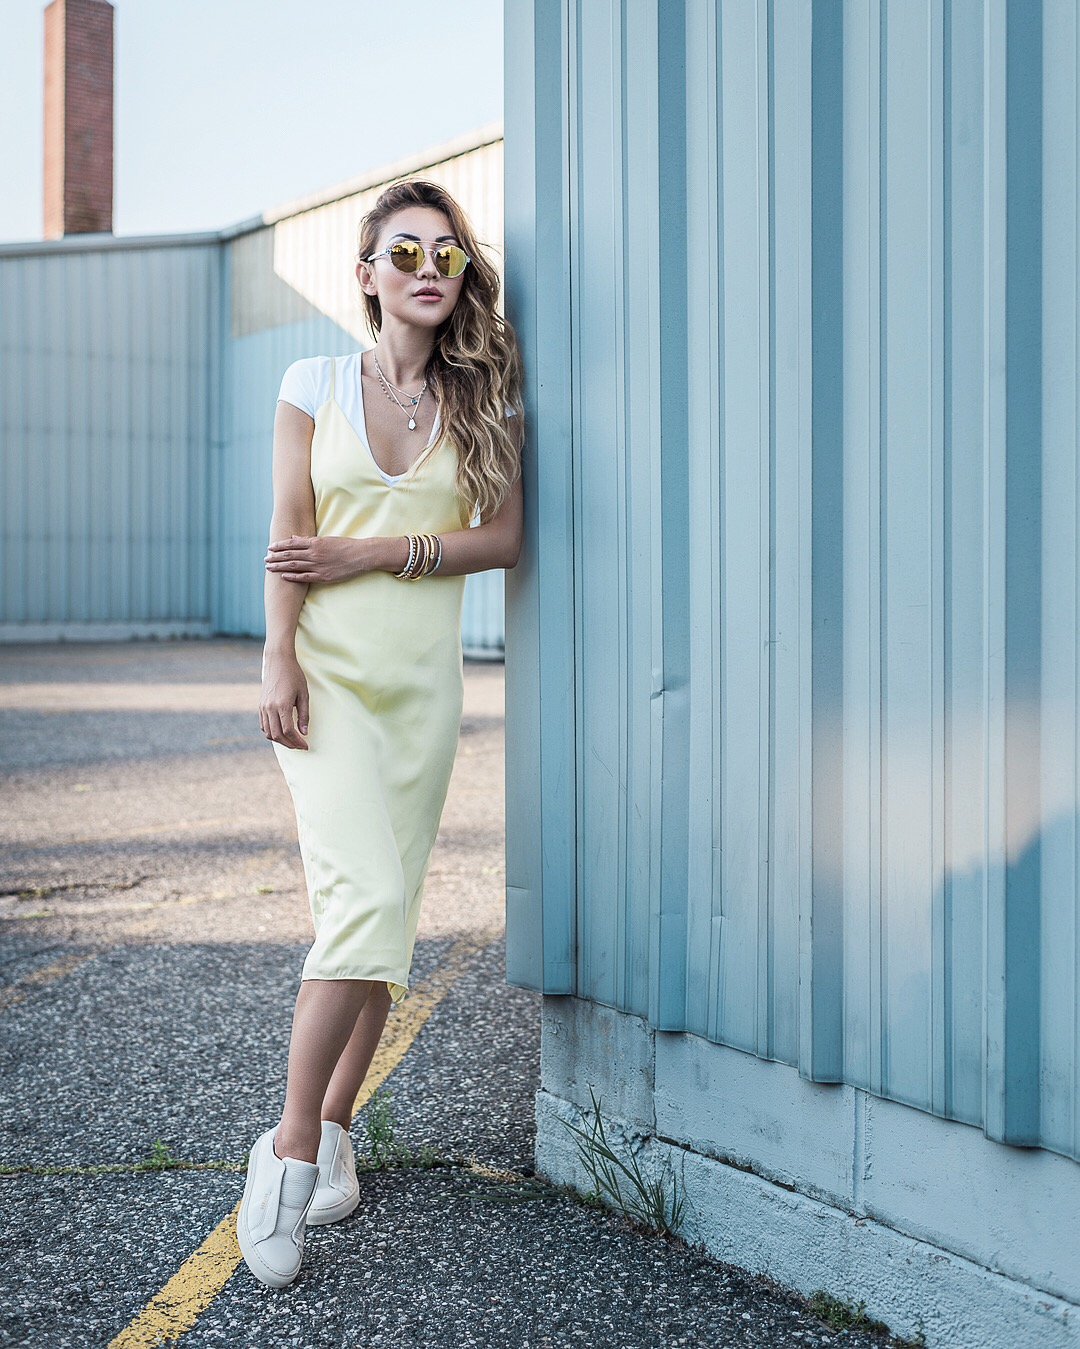 Slip Dress and Shirt - Ultra Chic On-The-Go Styles For Every Girl // NotJessFashion.com